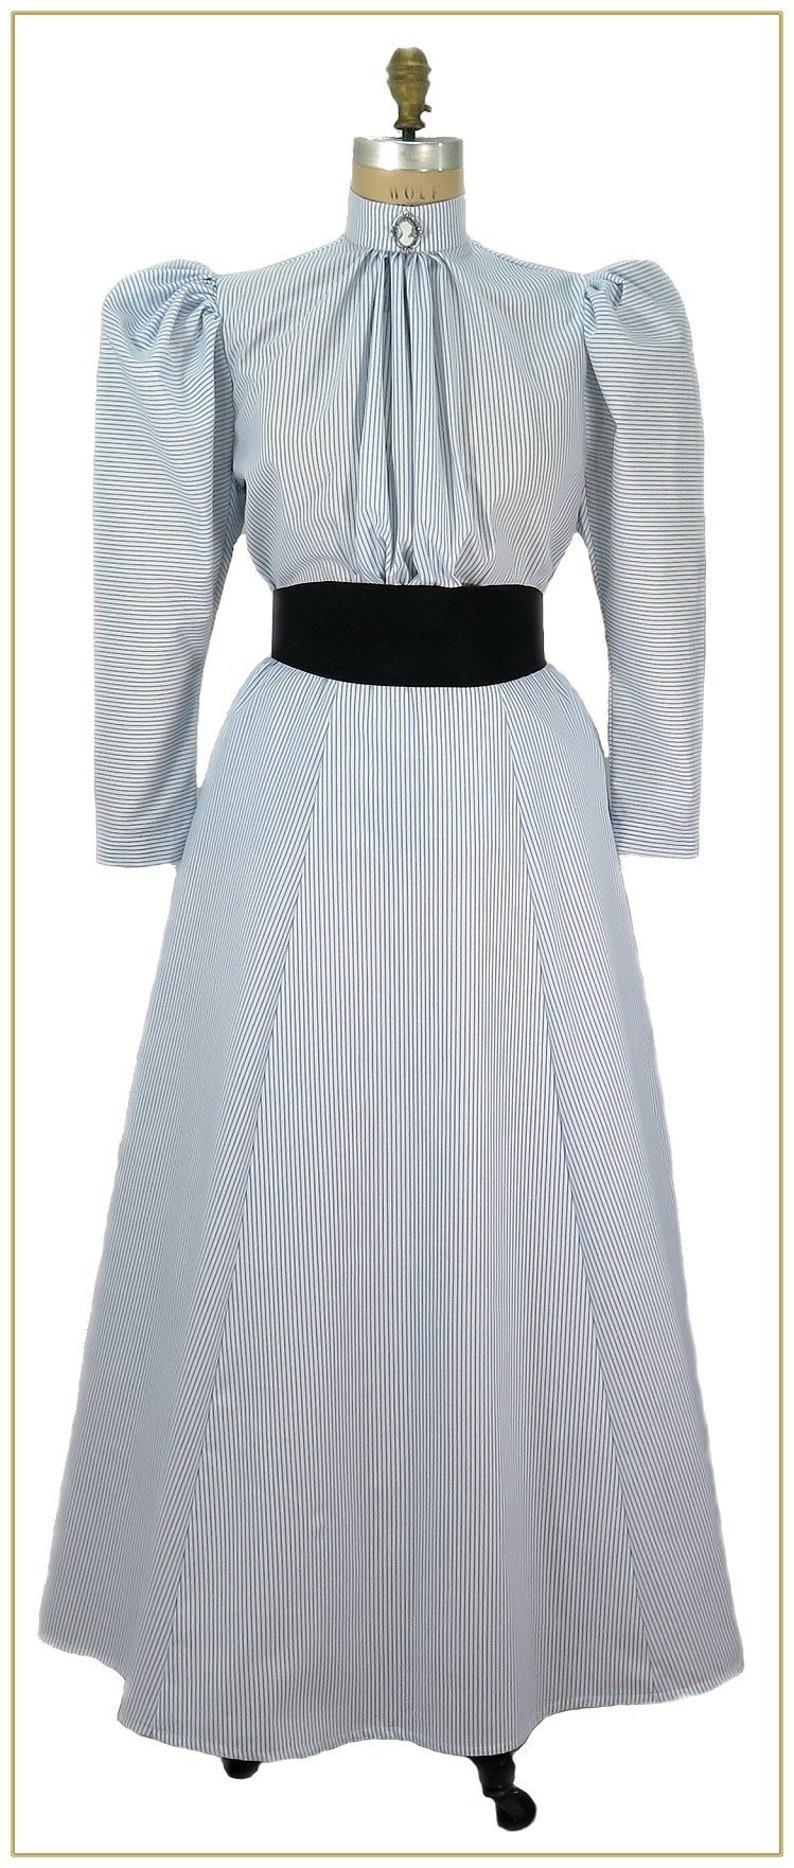 Victorian Plus Size Dresses | Edwardian Clothing, Costumes 1895-1905 Striped Maid Skirt  $59.00 AT vintagedancer.com